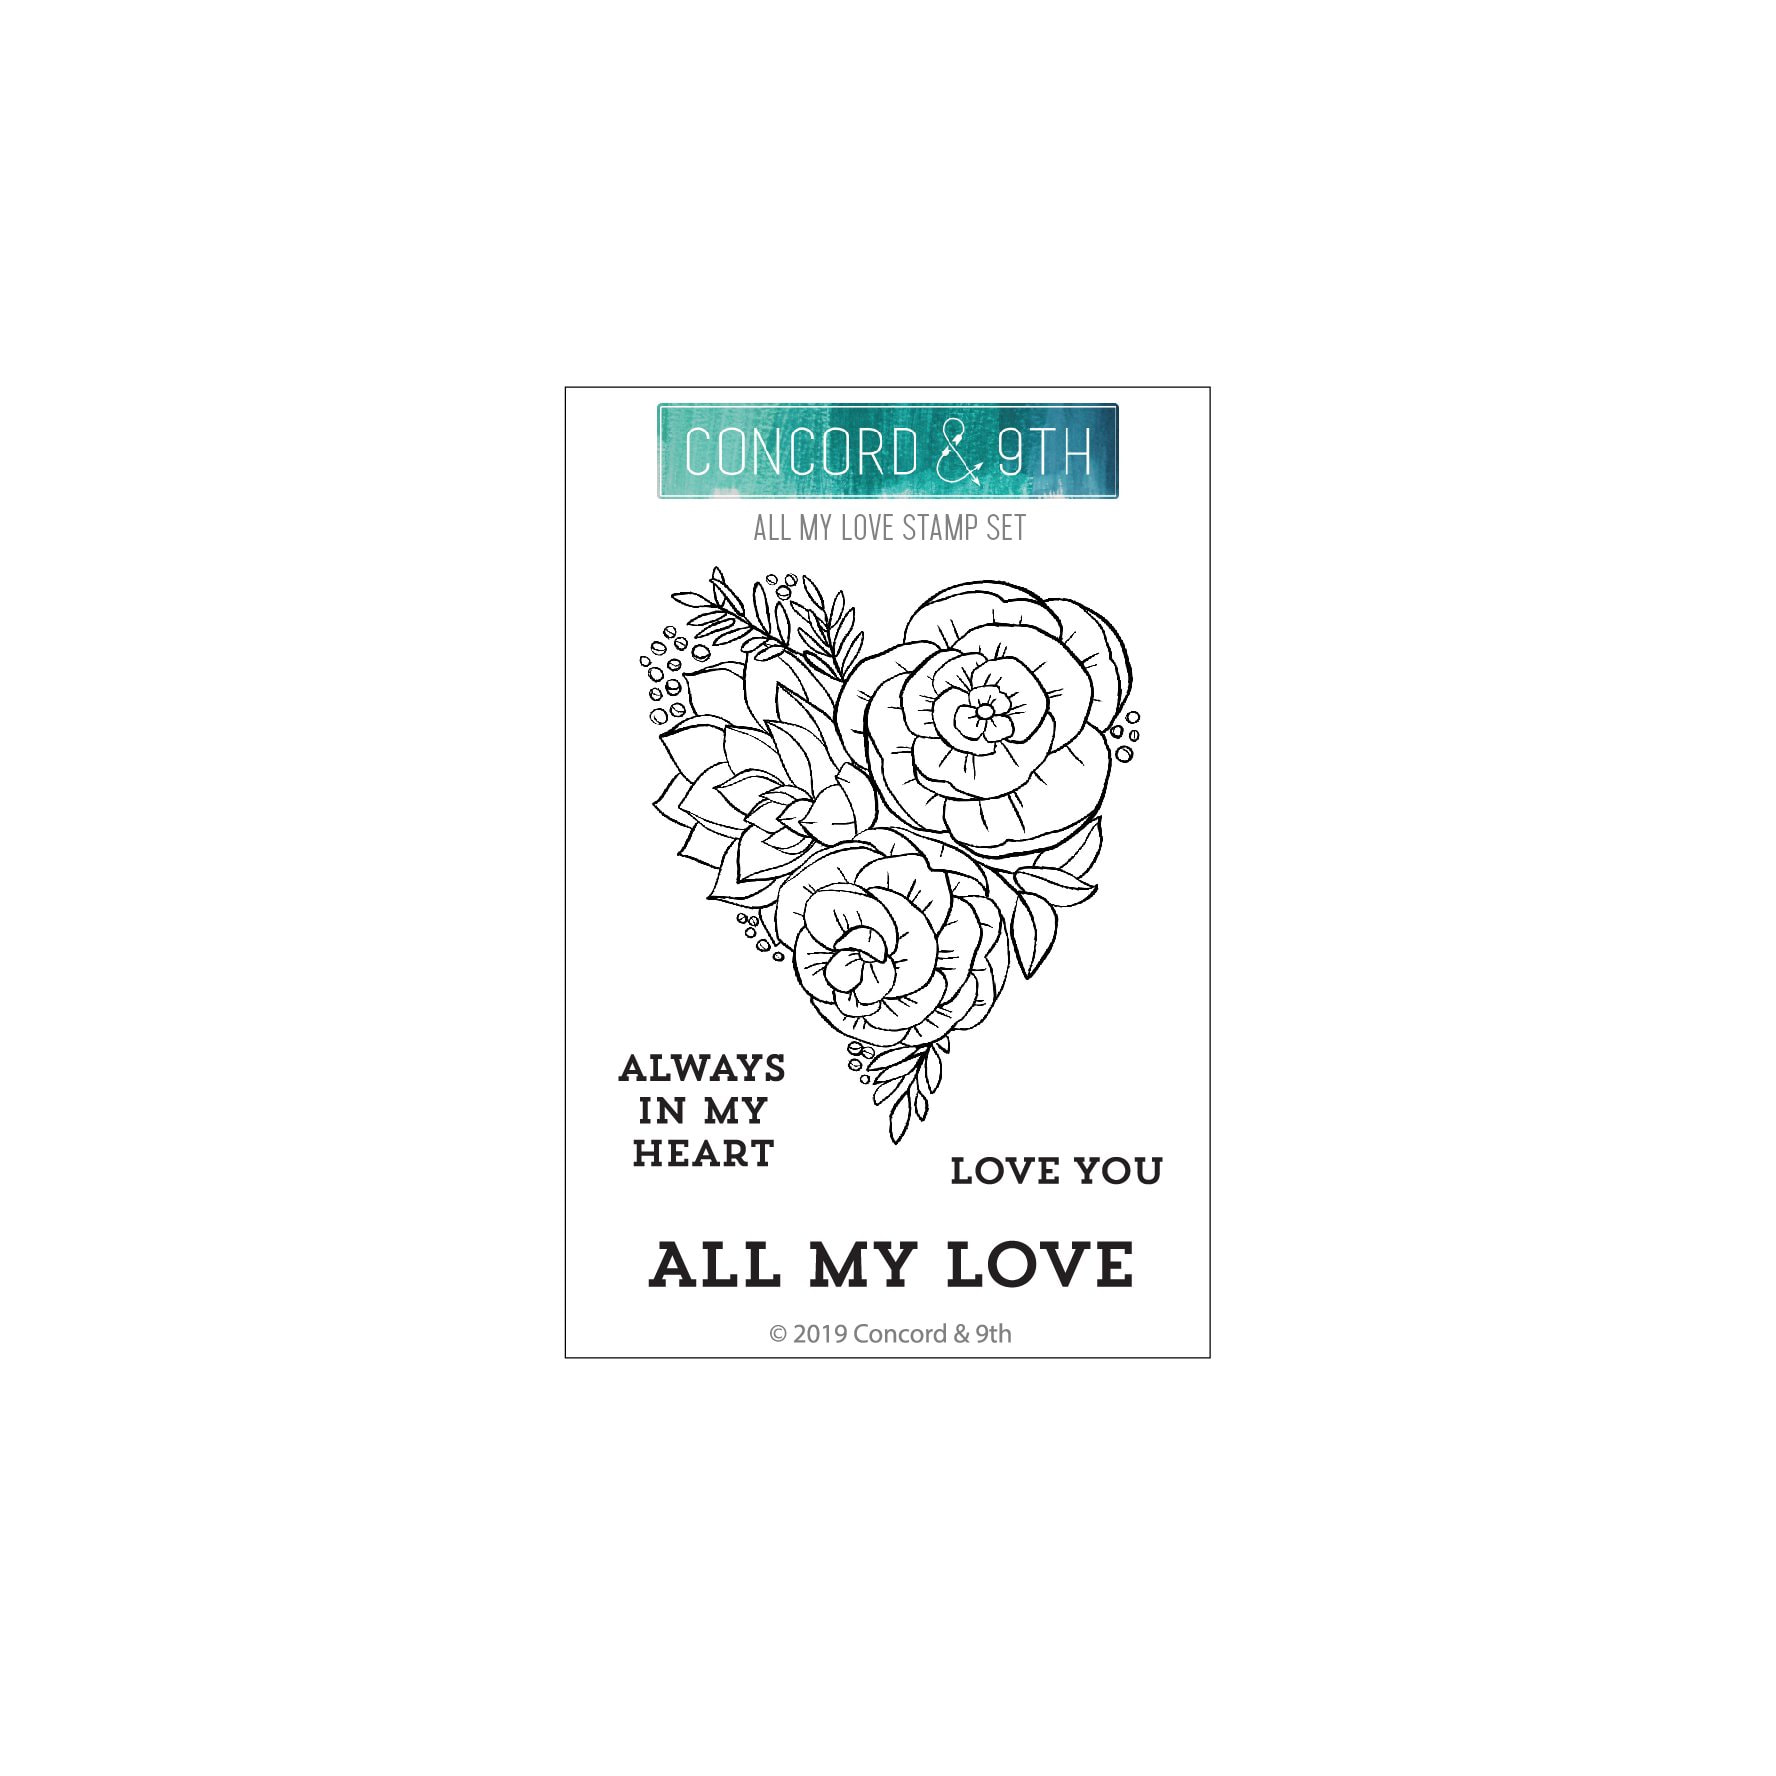 Concord & 9th - All My Love Stamp Set